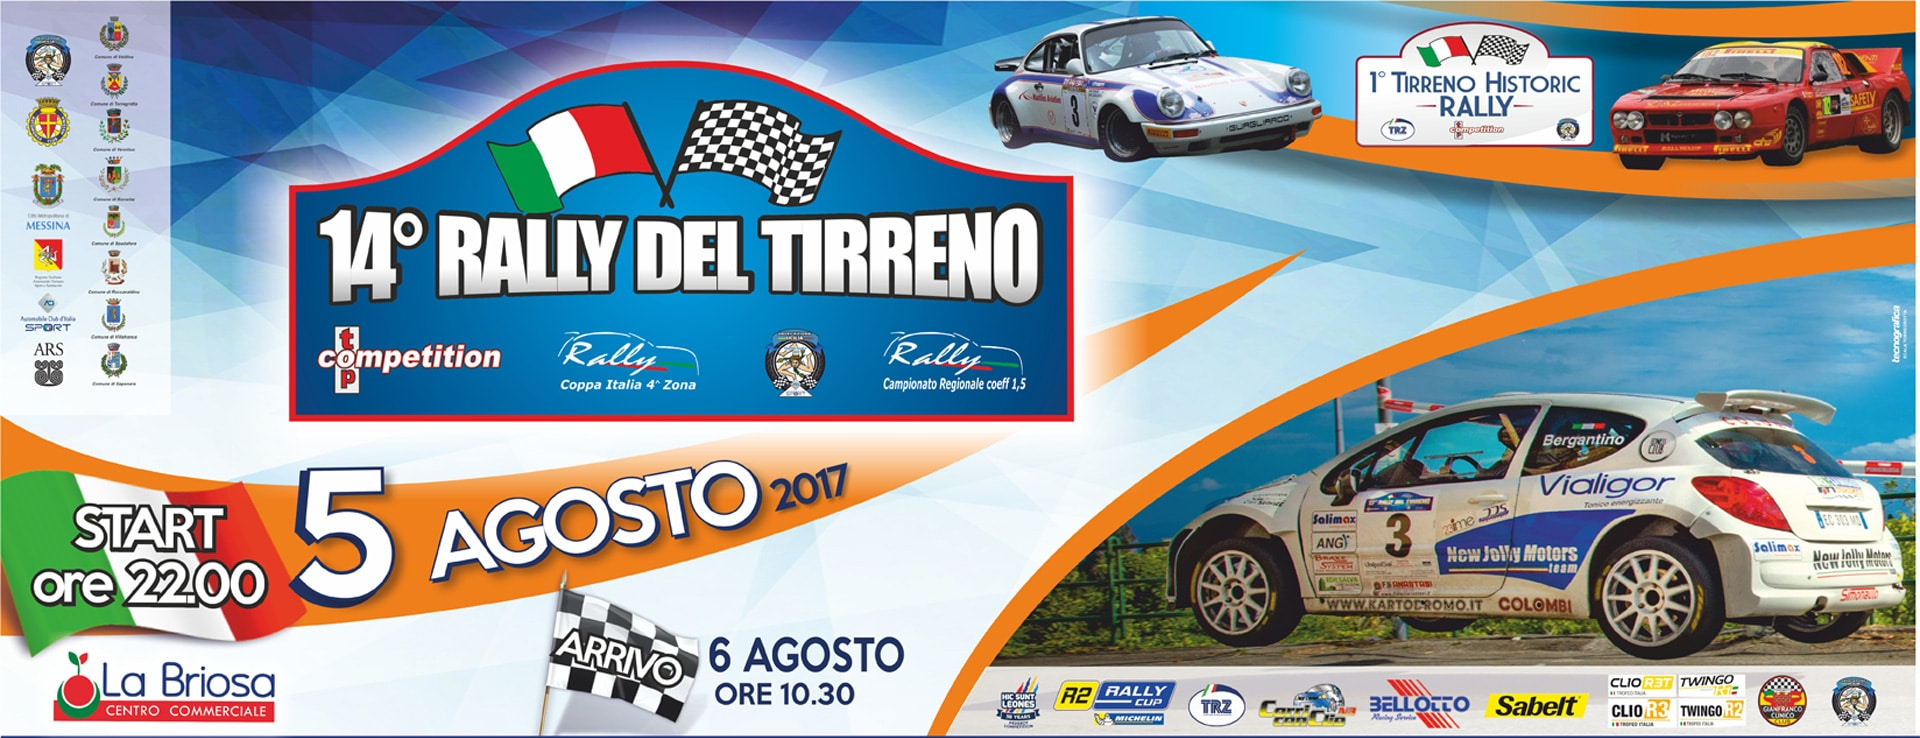 14° Rally del Tirreno